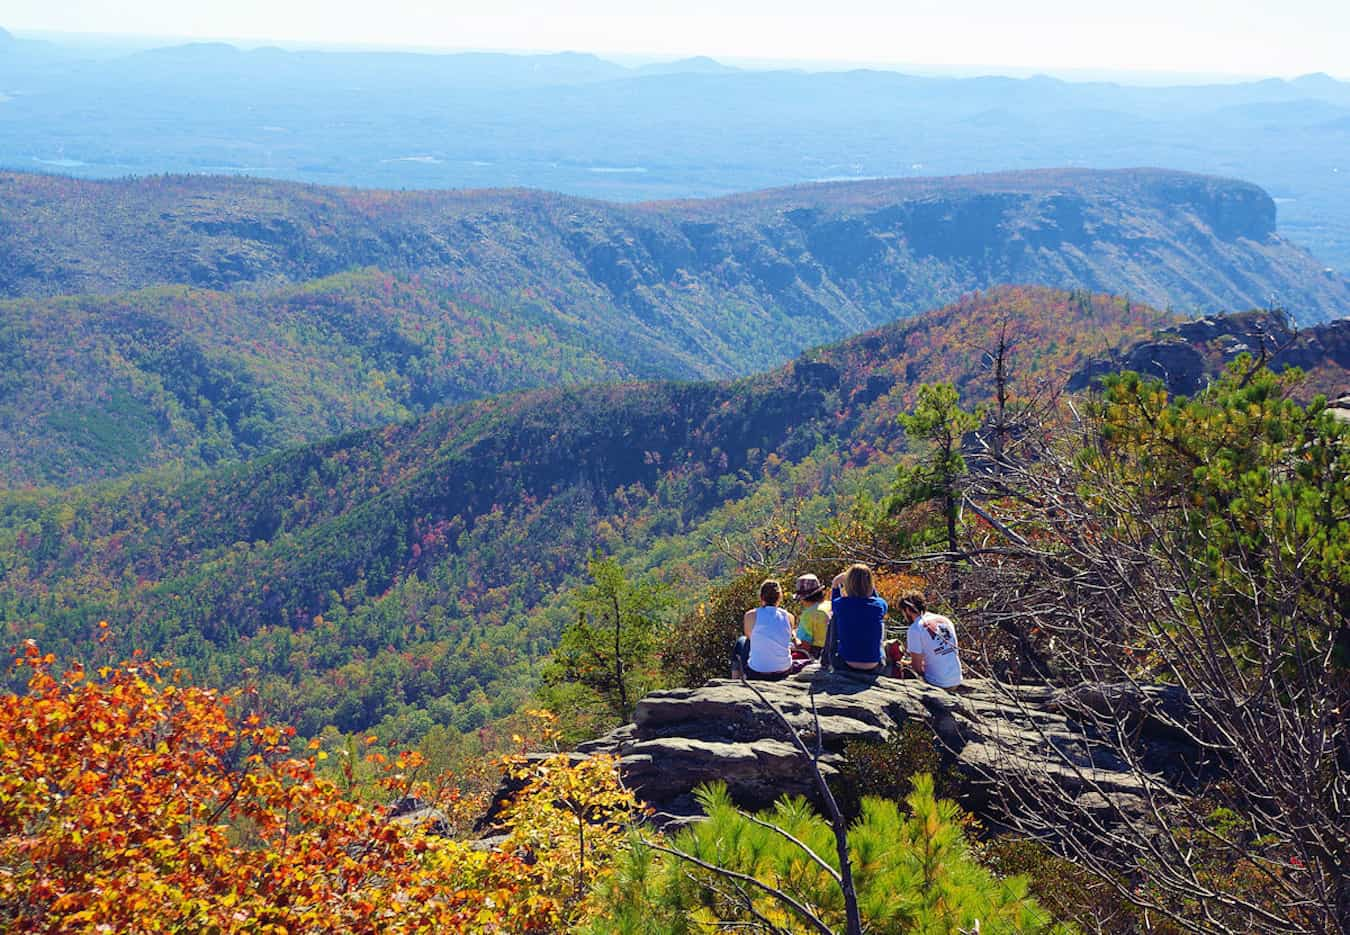 Overlooking Linville Gorge in Asheville, North Carolina